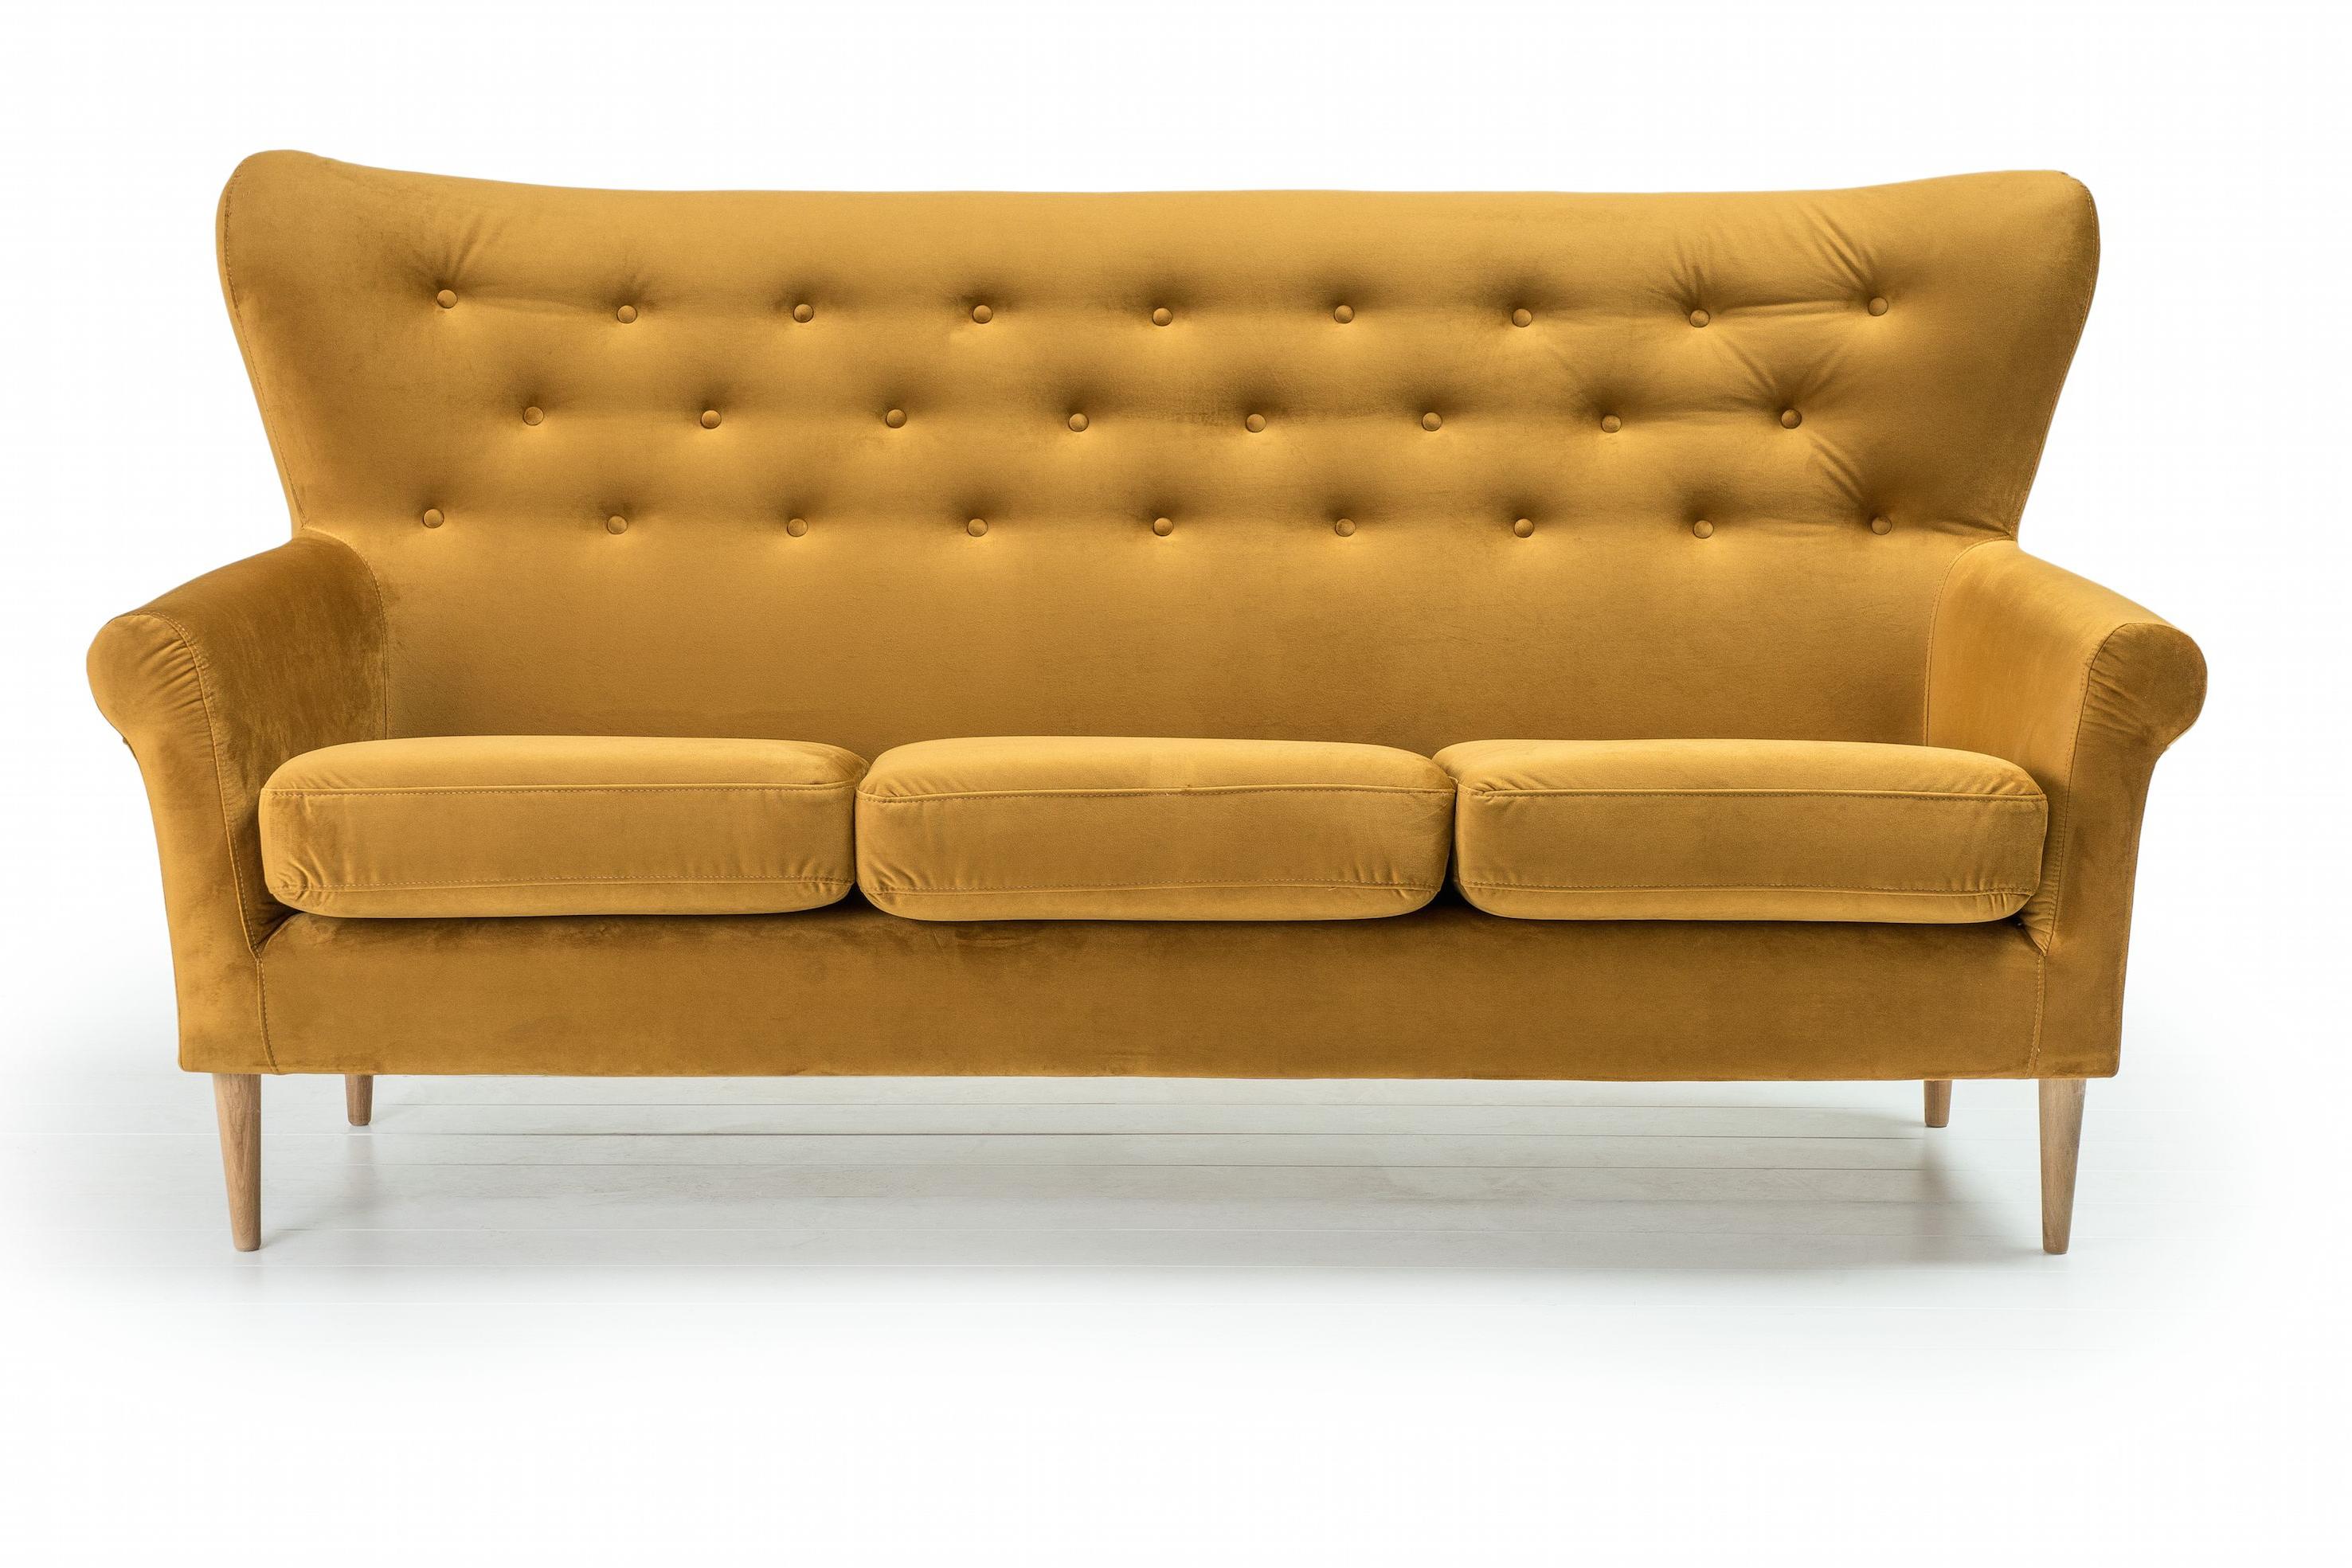 Preferred Stylish Modern Sofa With Buttons And The Wing Arms, Perfect For Loft For Loft Arm Sofa Chairs (Gallery 1 of 20)